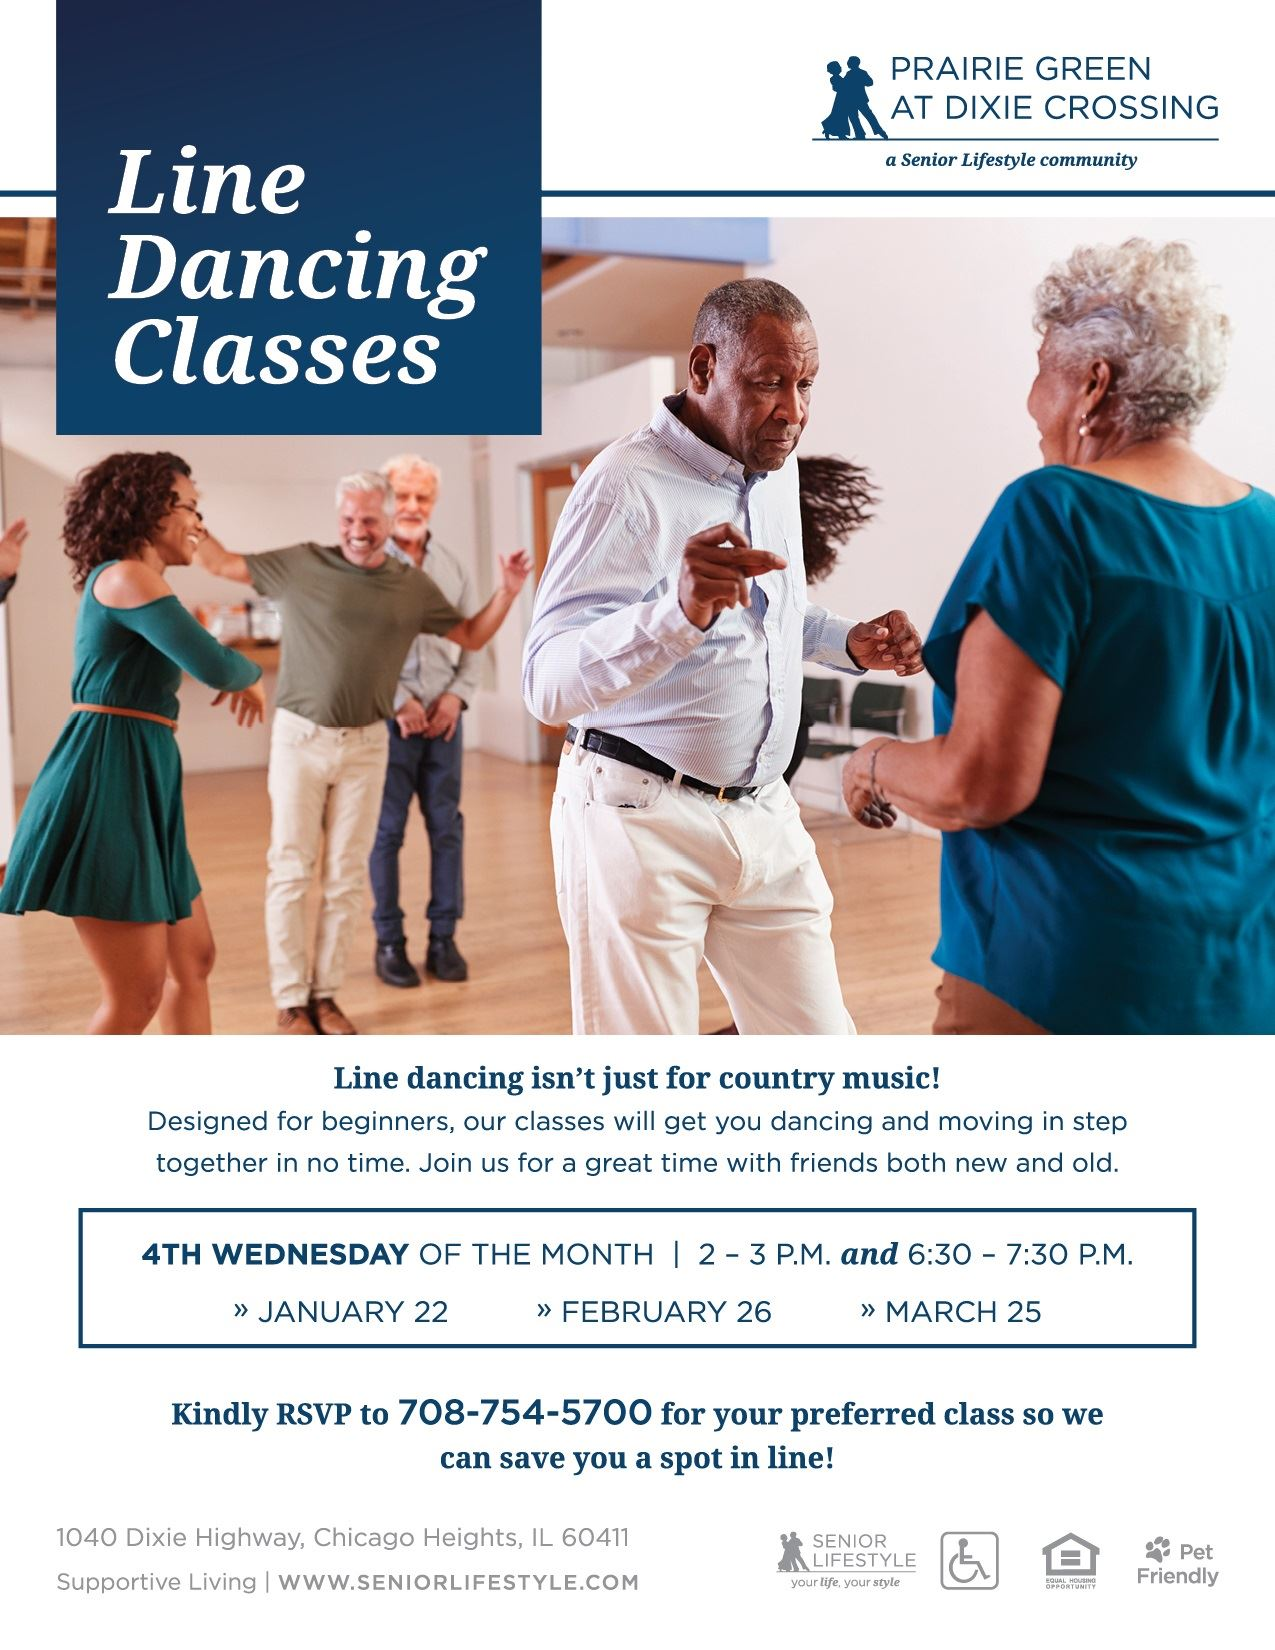 Prairie Green at Dixie Crossing - Line Dancing Classes 2020